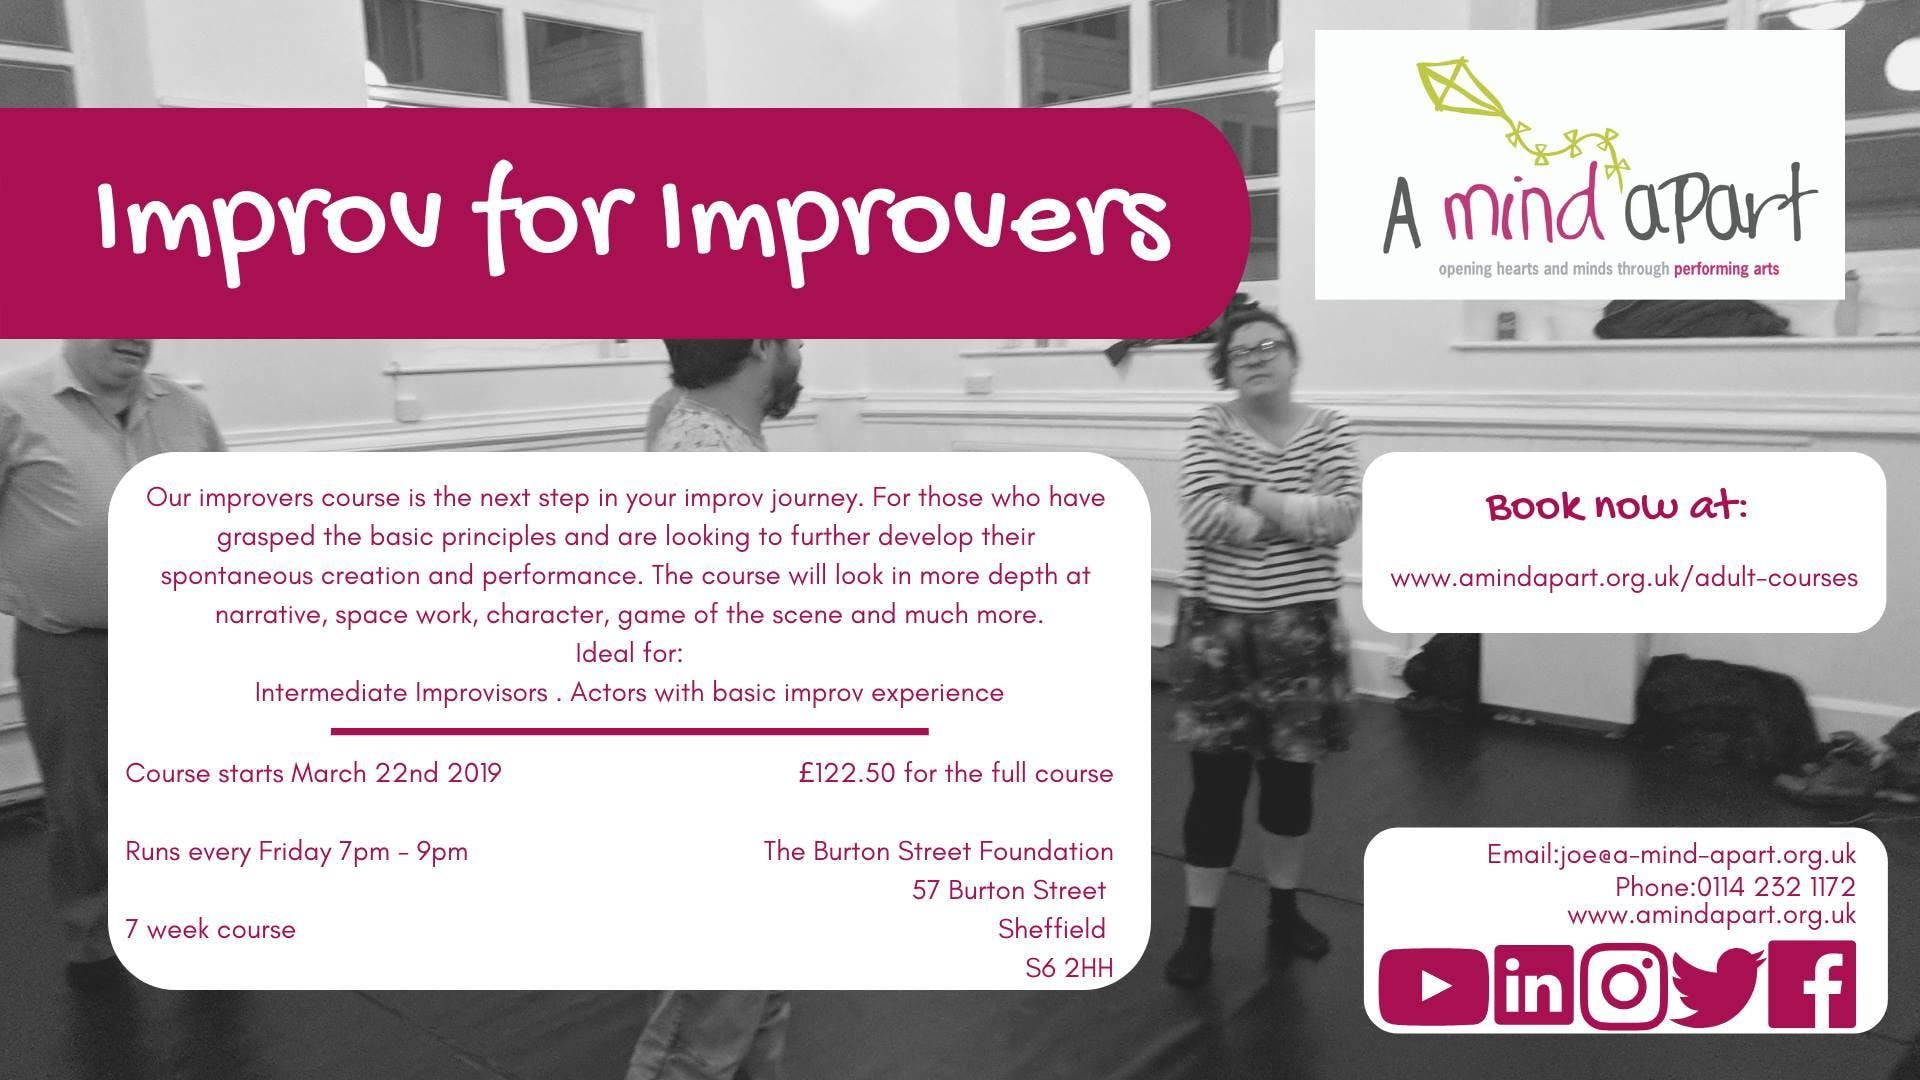 Improv for Improvers